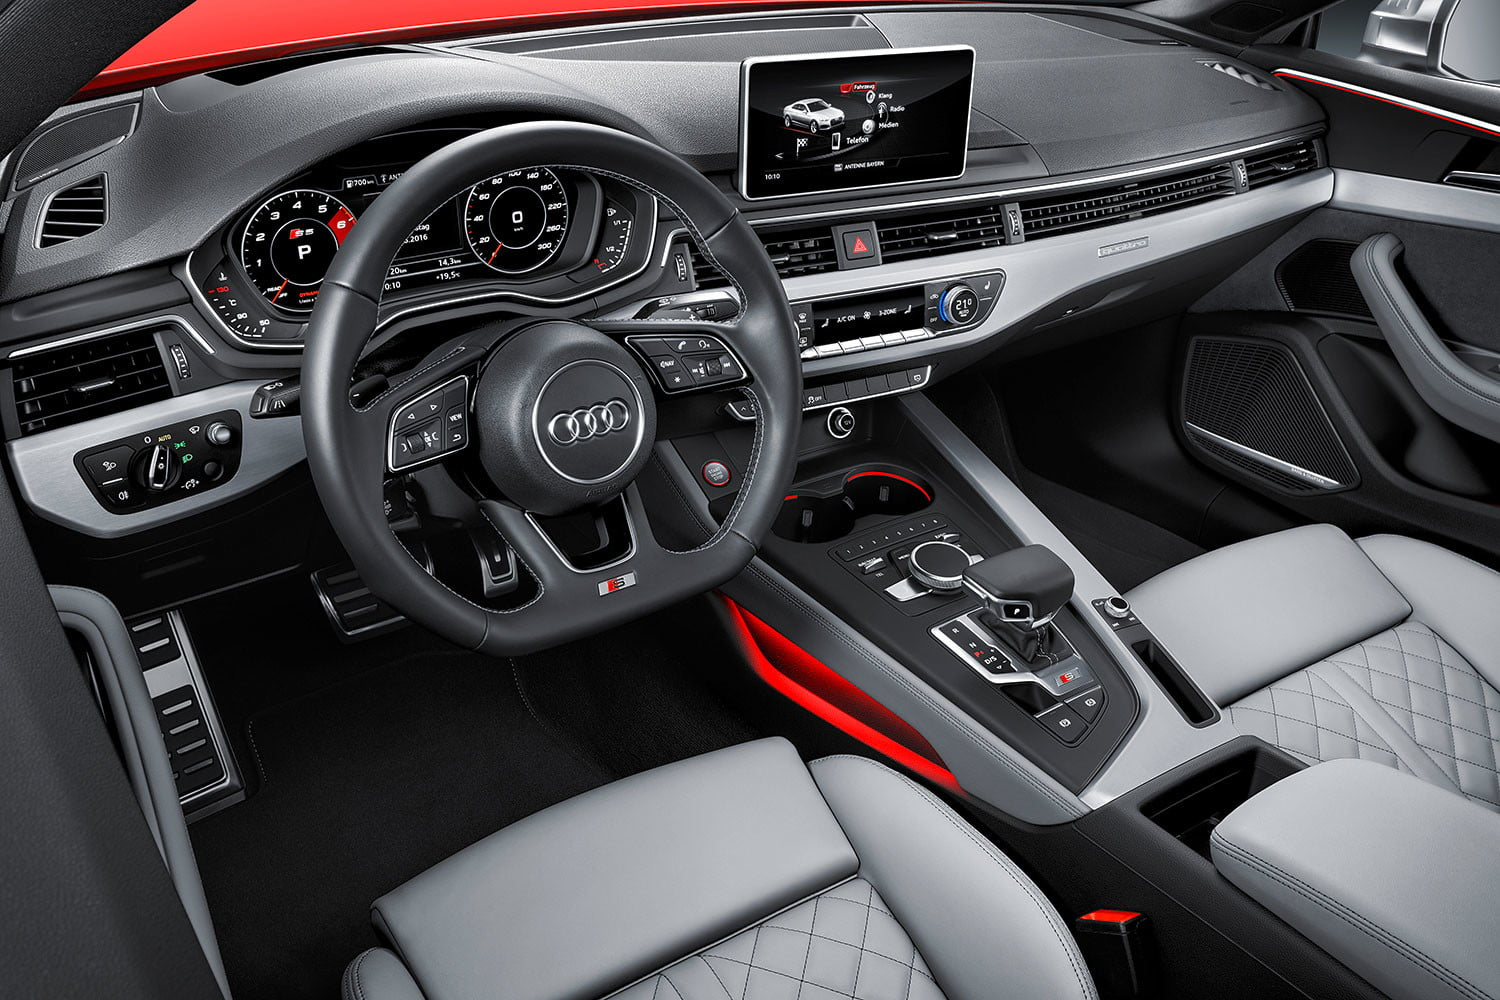 2017 audi a5 news pictures specs performance s5 coupe 0016